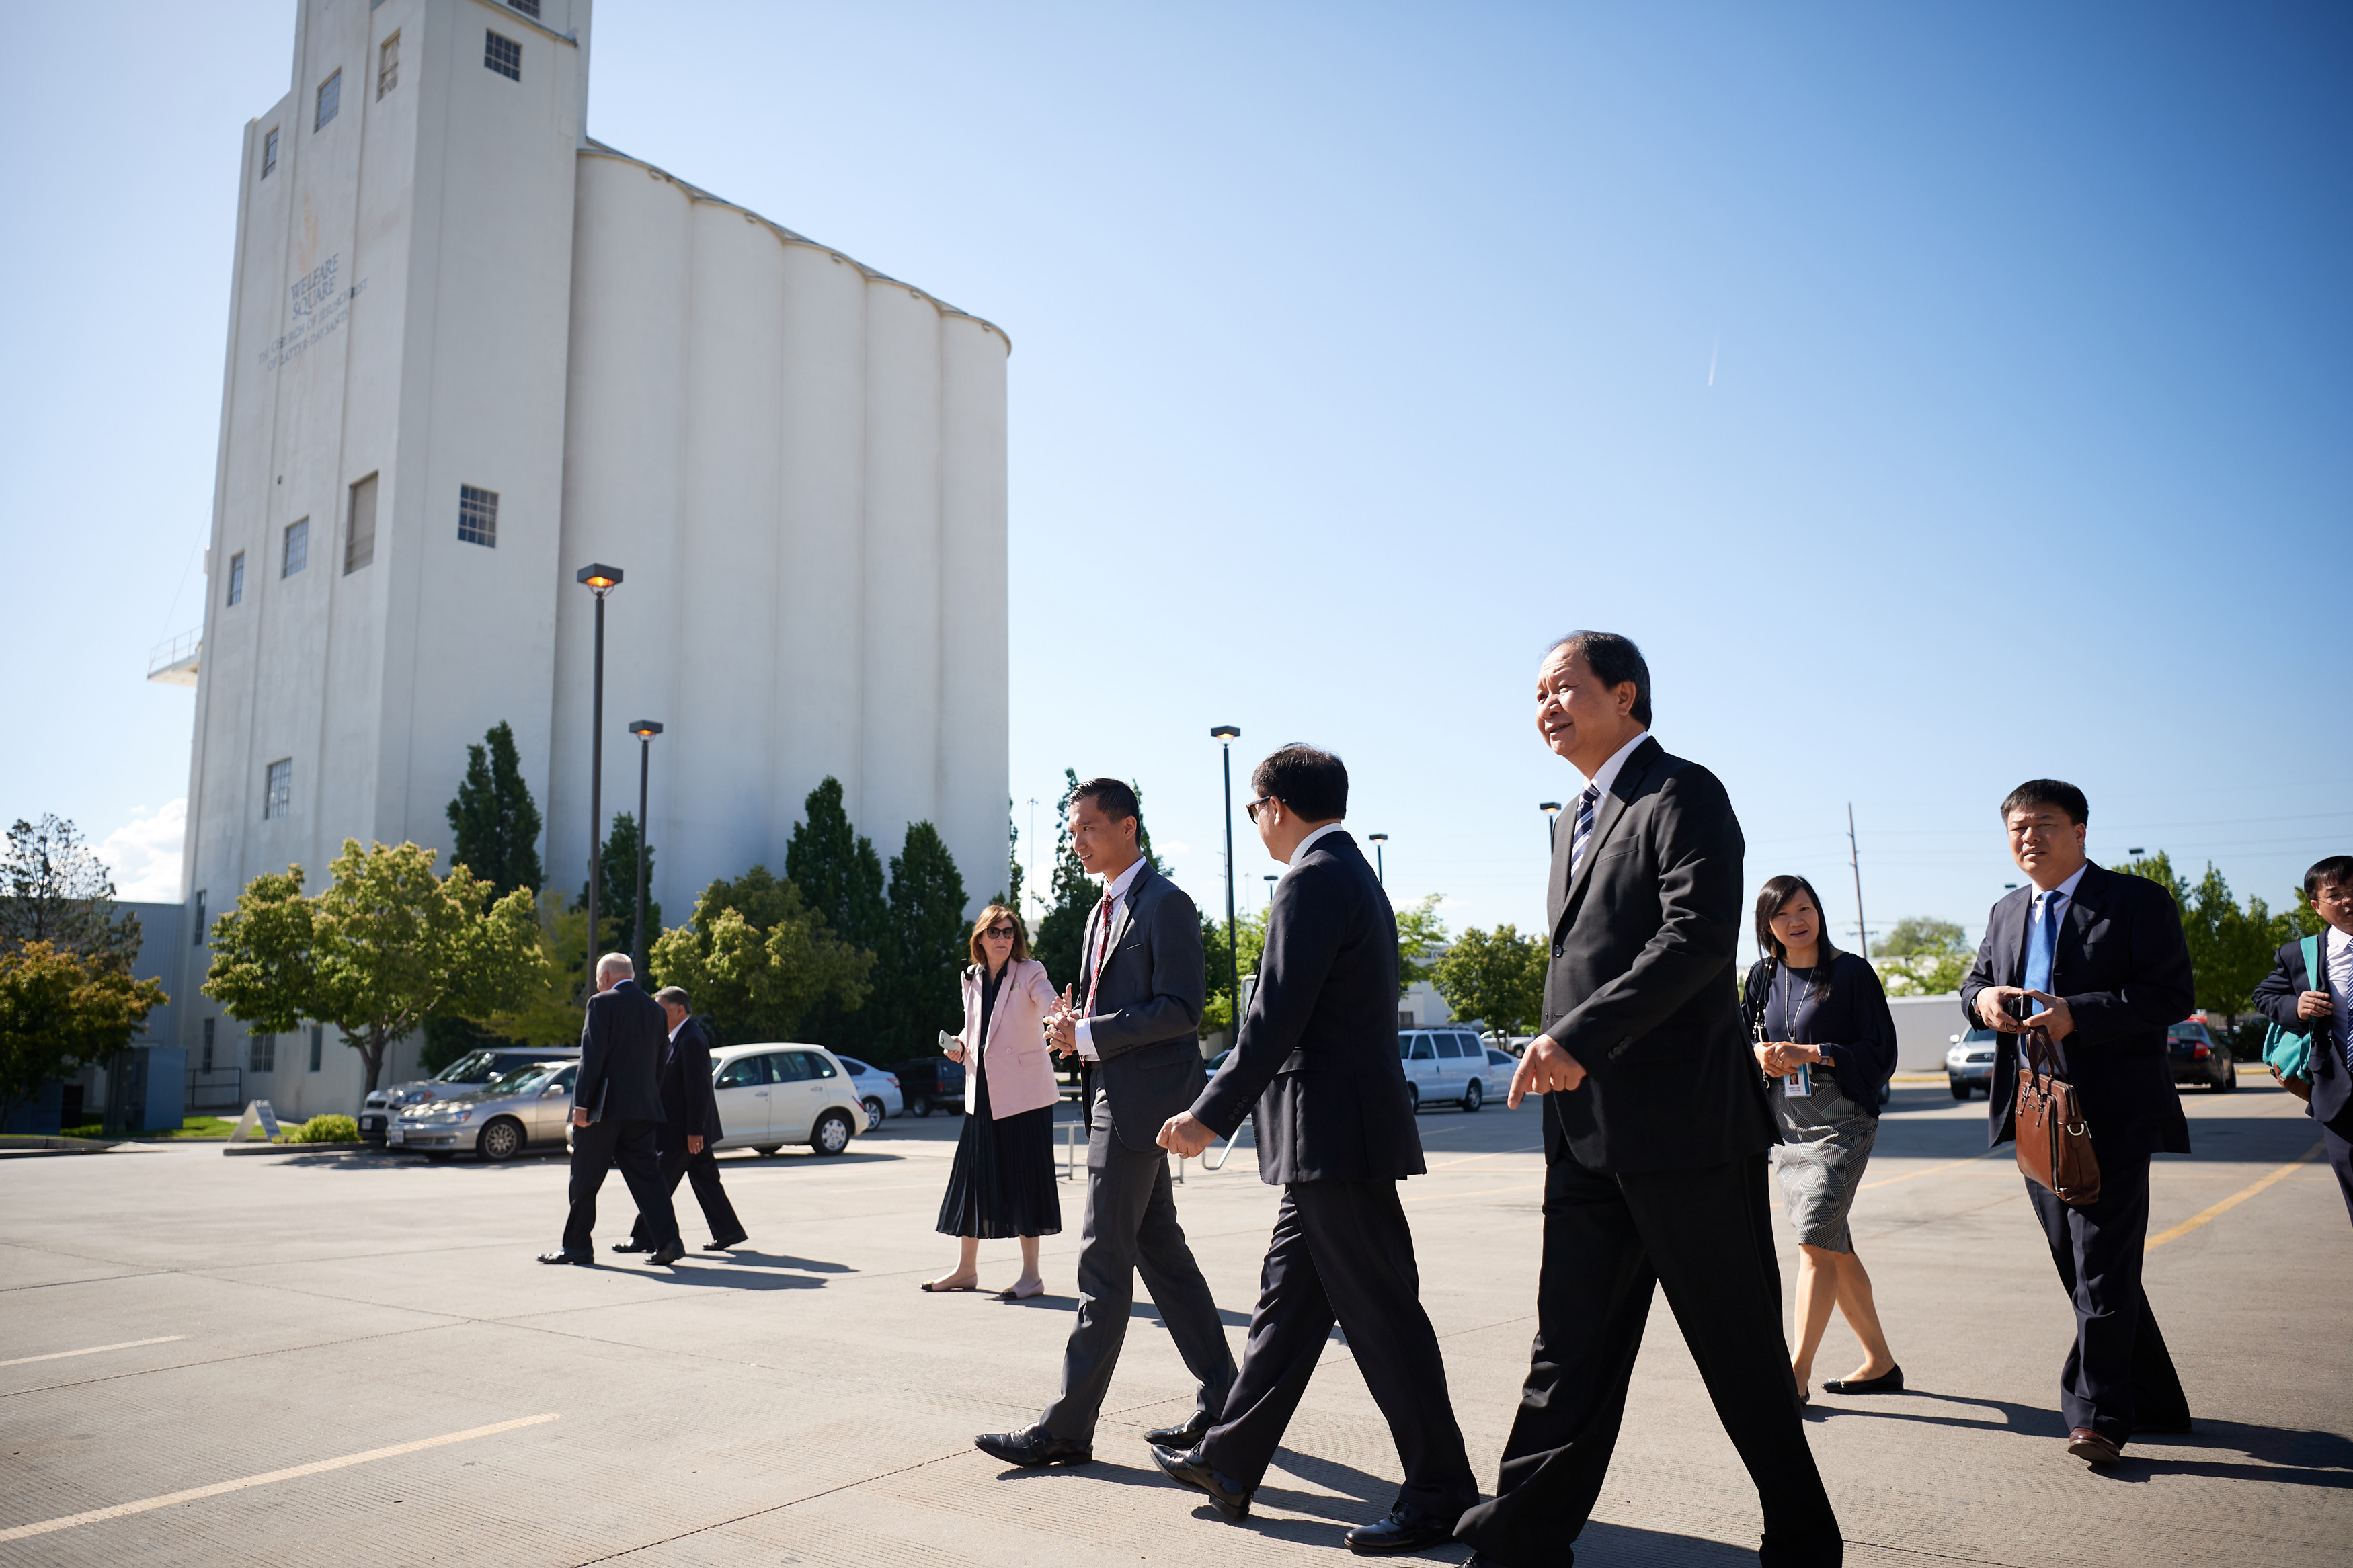 Senior Church leaders hosted a delegation from Vietnam, headed by the Vietnamese Committee for Religious Affairs, in Salt Lake City on June 4-6.